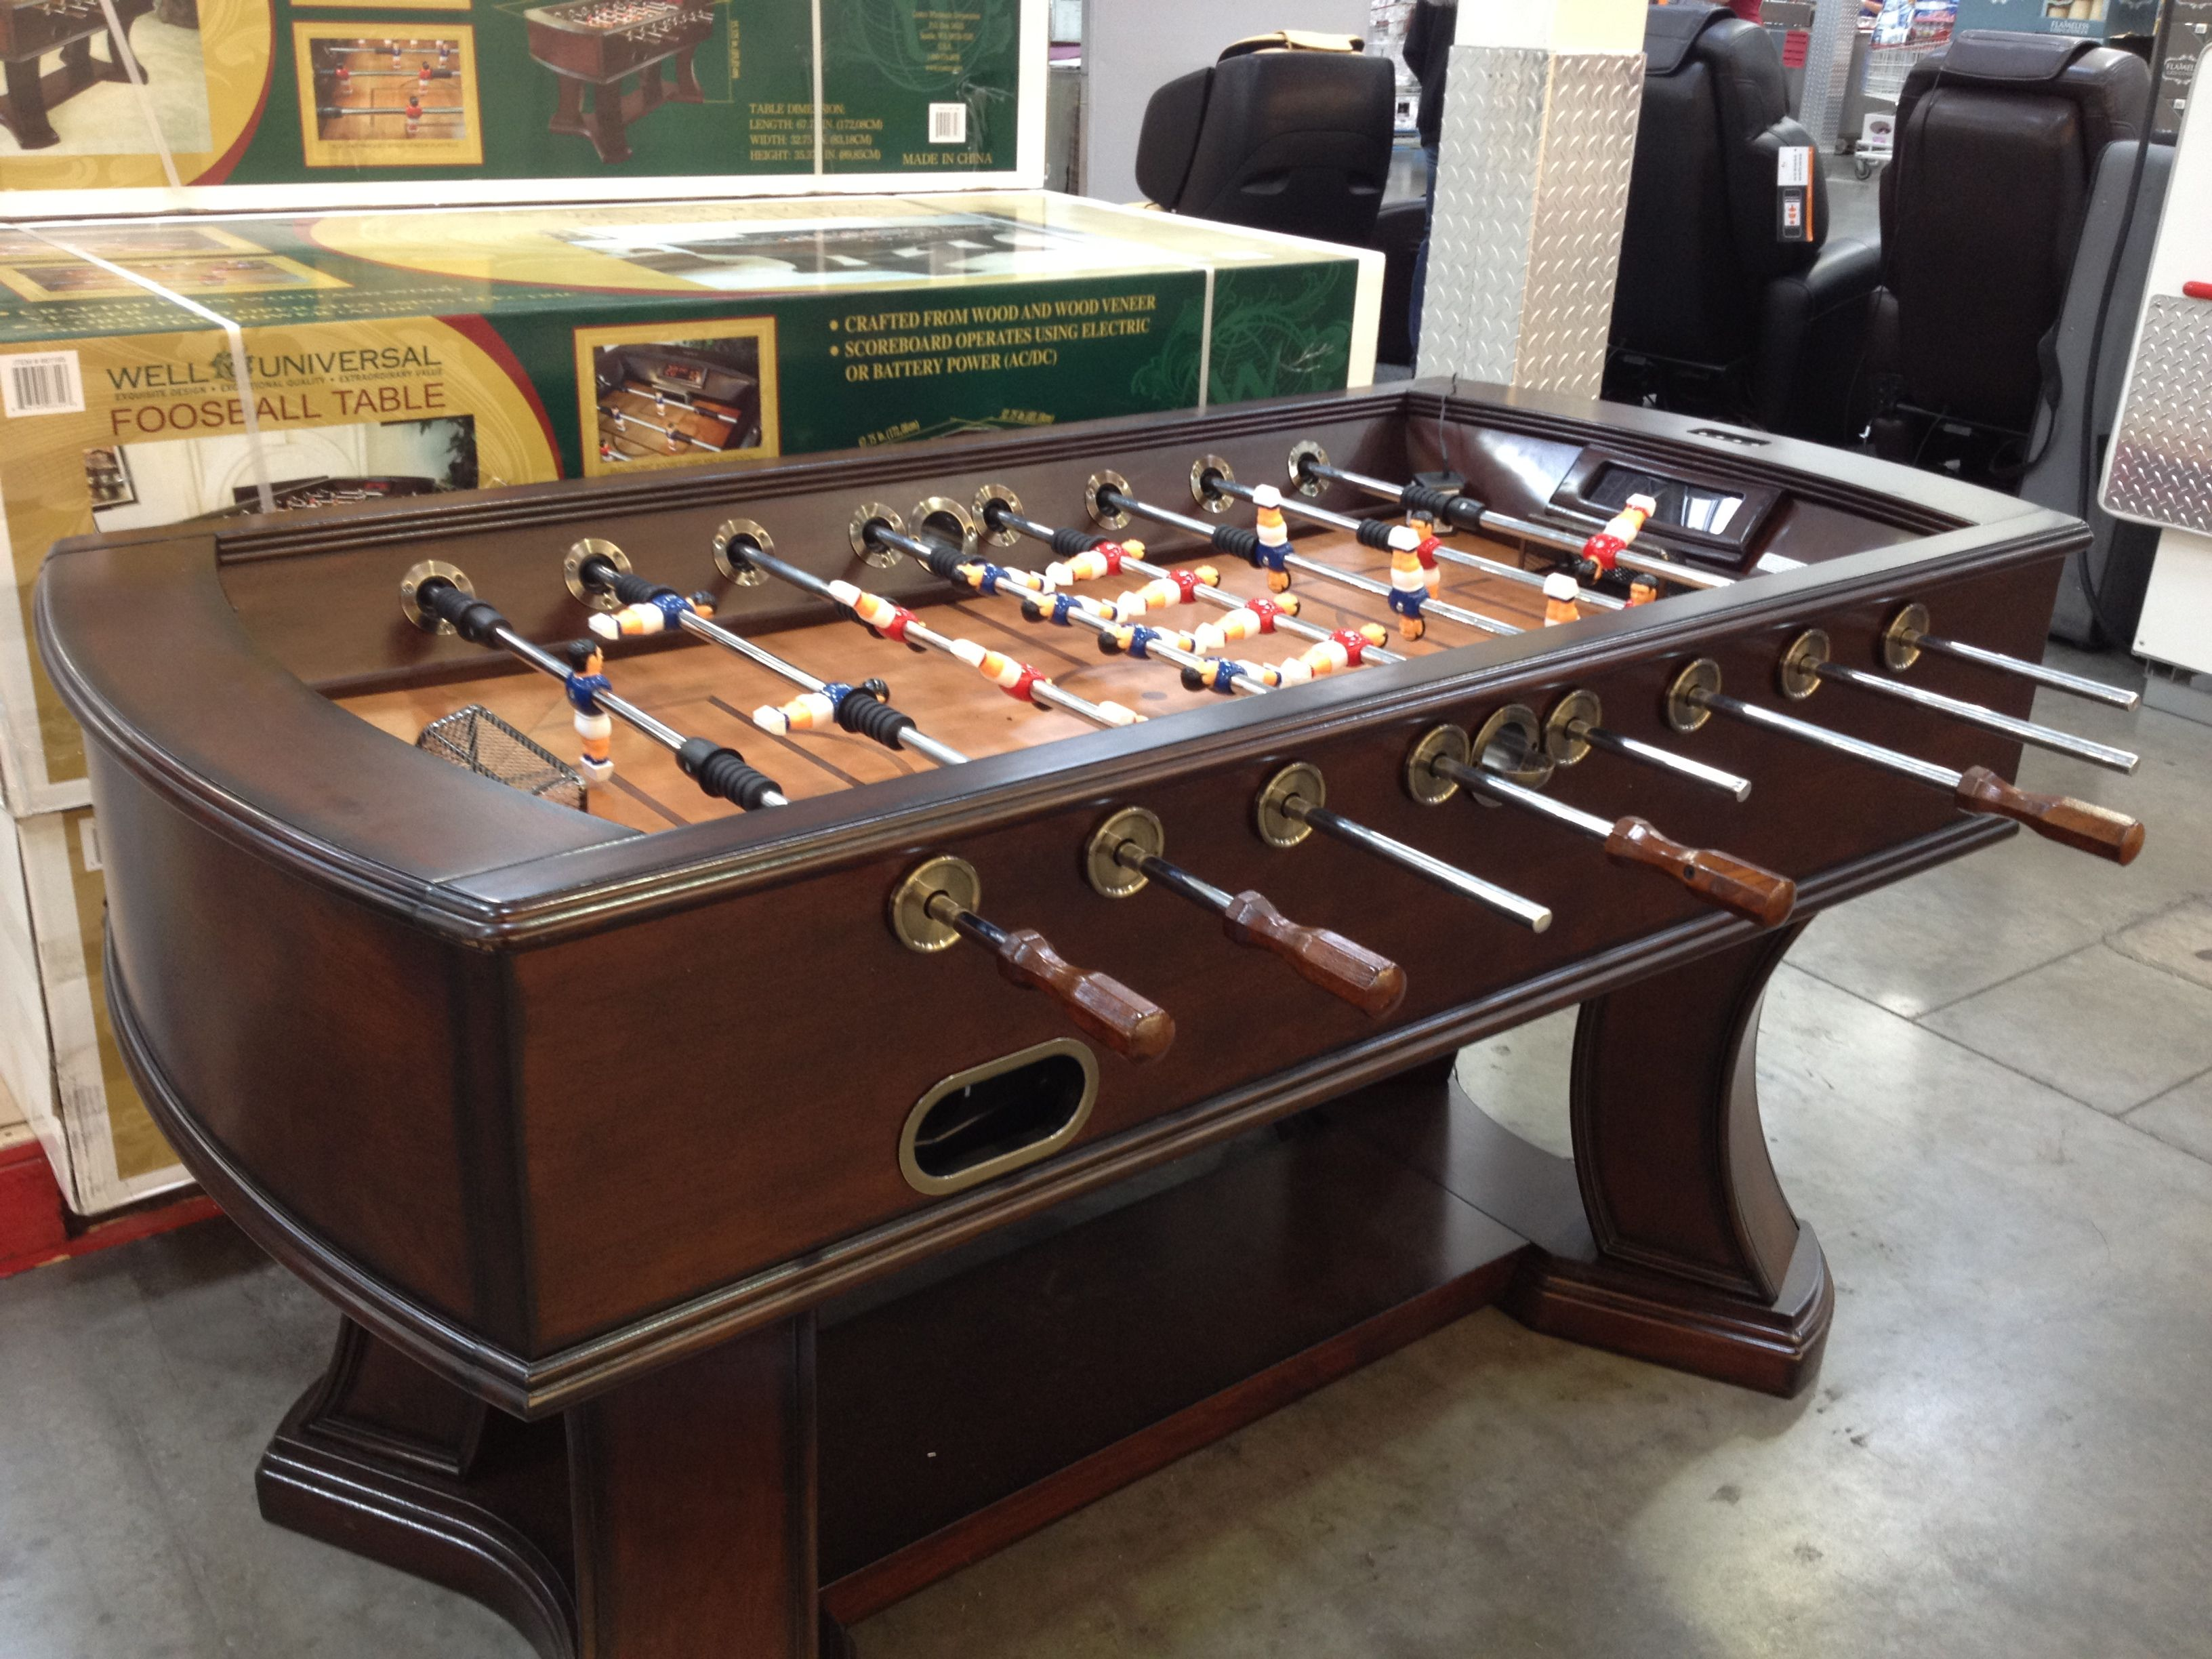 Costco Coffee Table Foosball Table With Electronic Scoring 450 At Costco